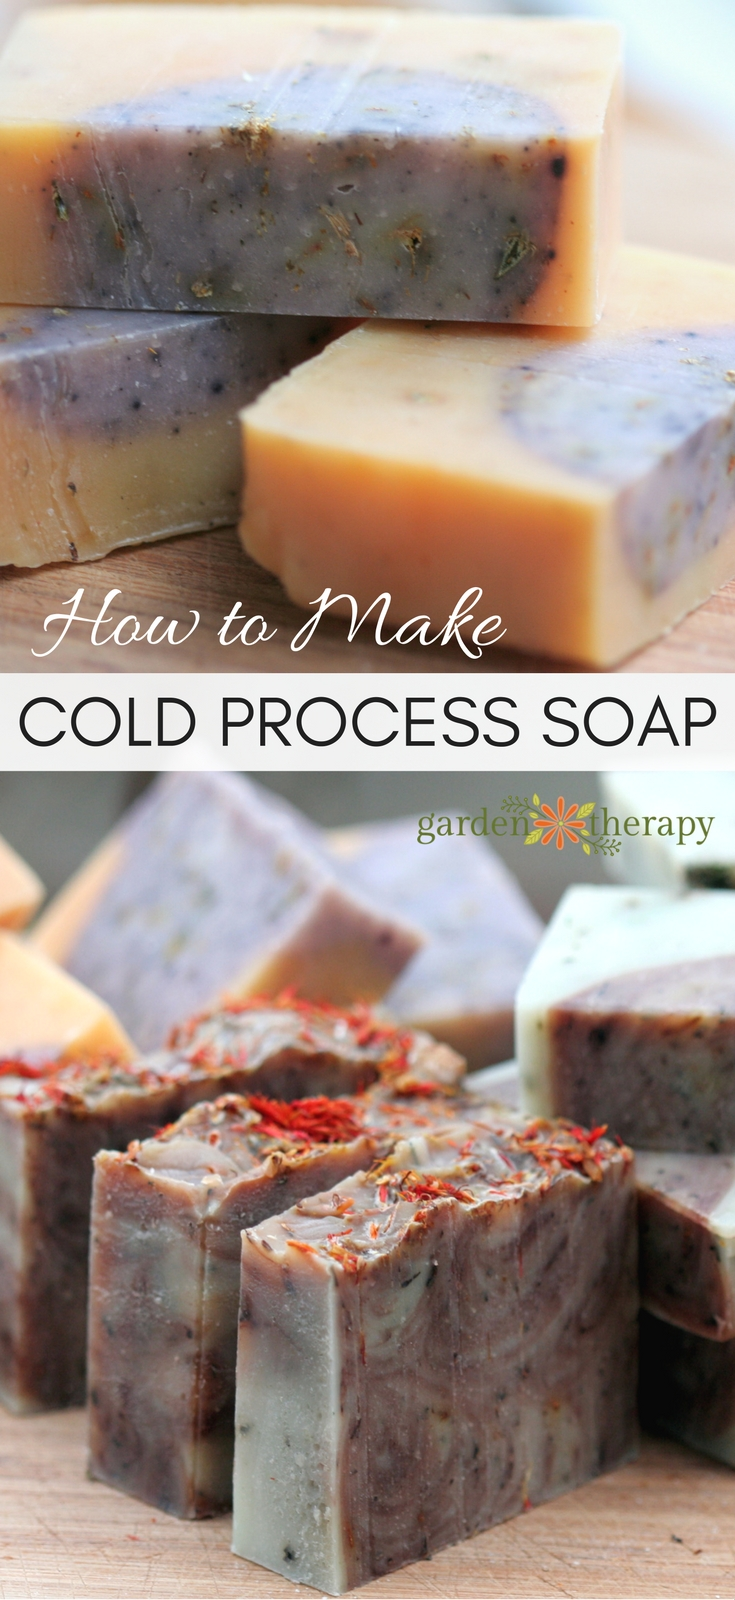 All-Natural Handmade Soap